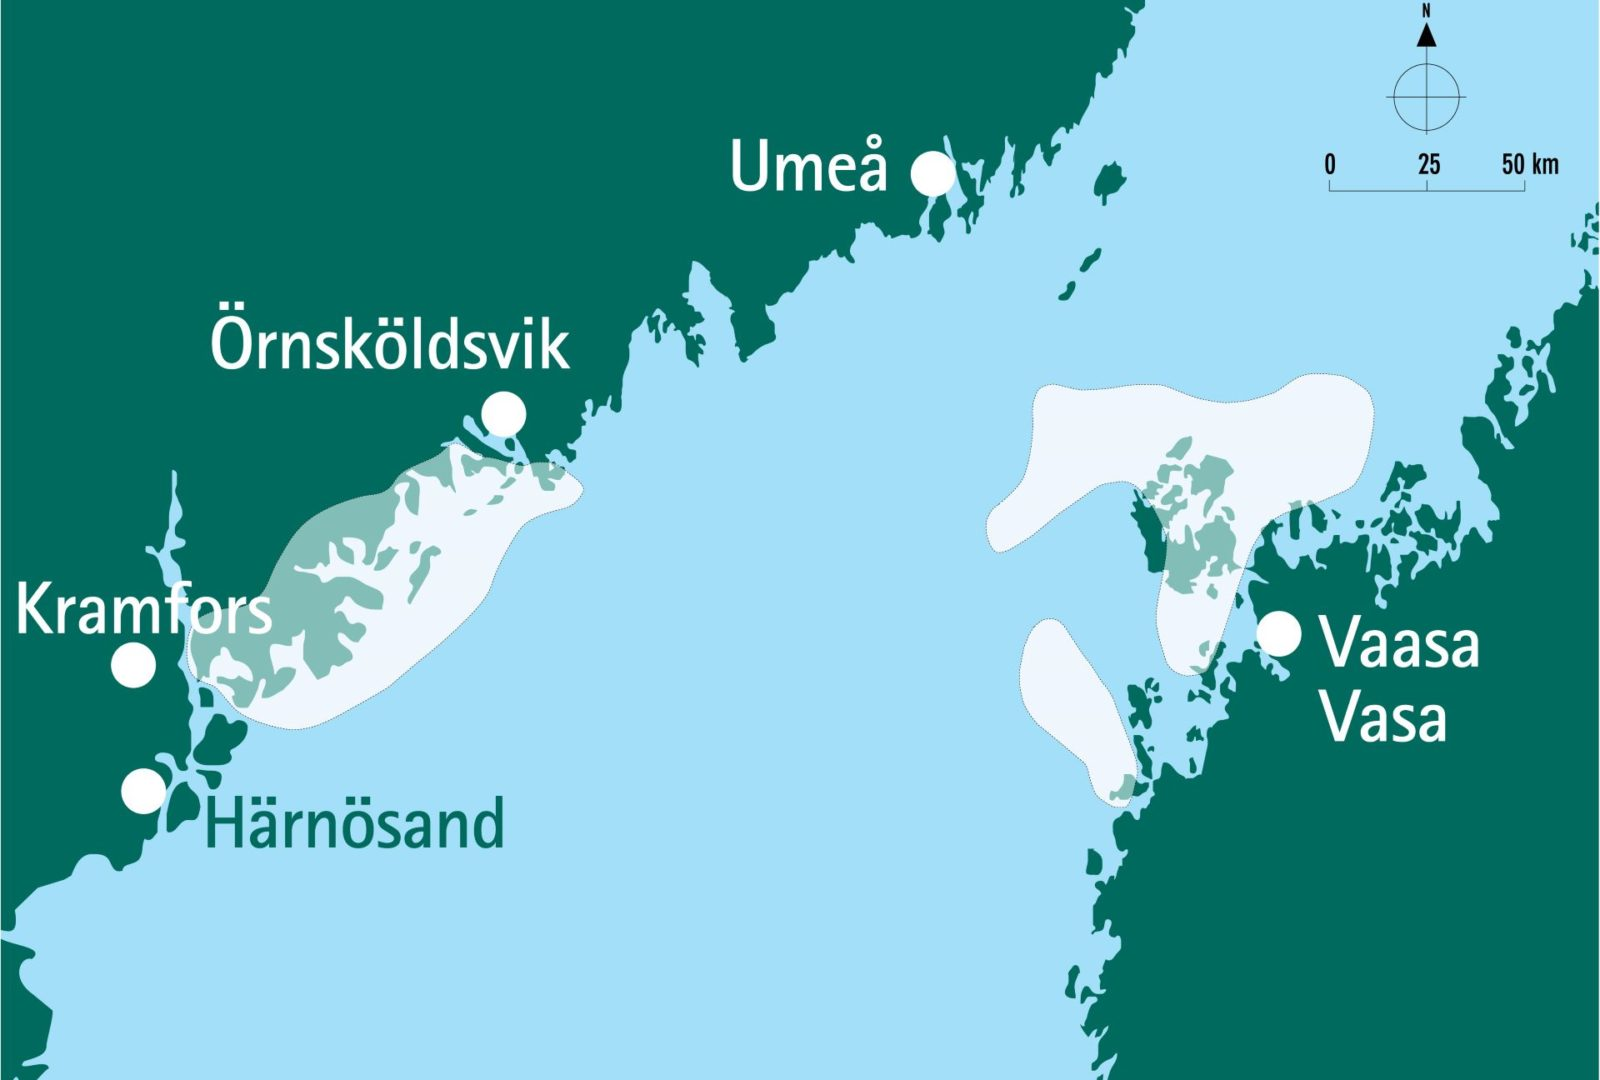 A map presenting the transboundary World Heritage Site of High Coast and Kvarken Archipelago in Sweden and in Finland.